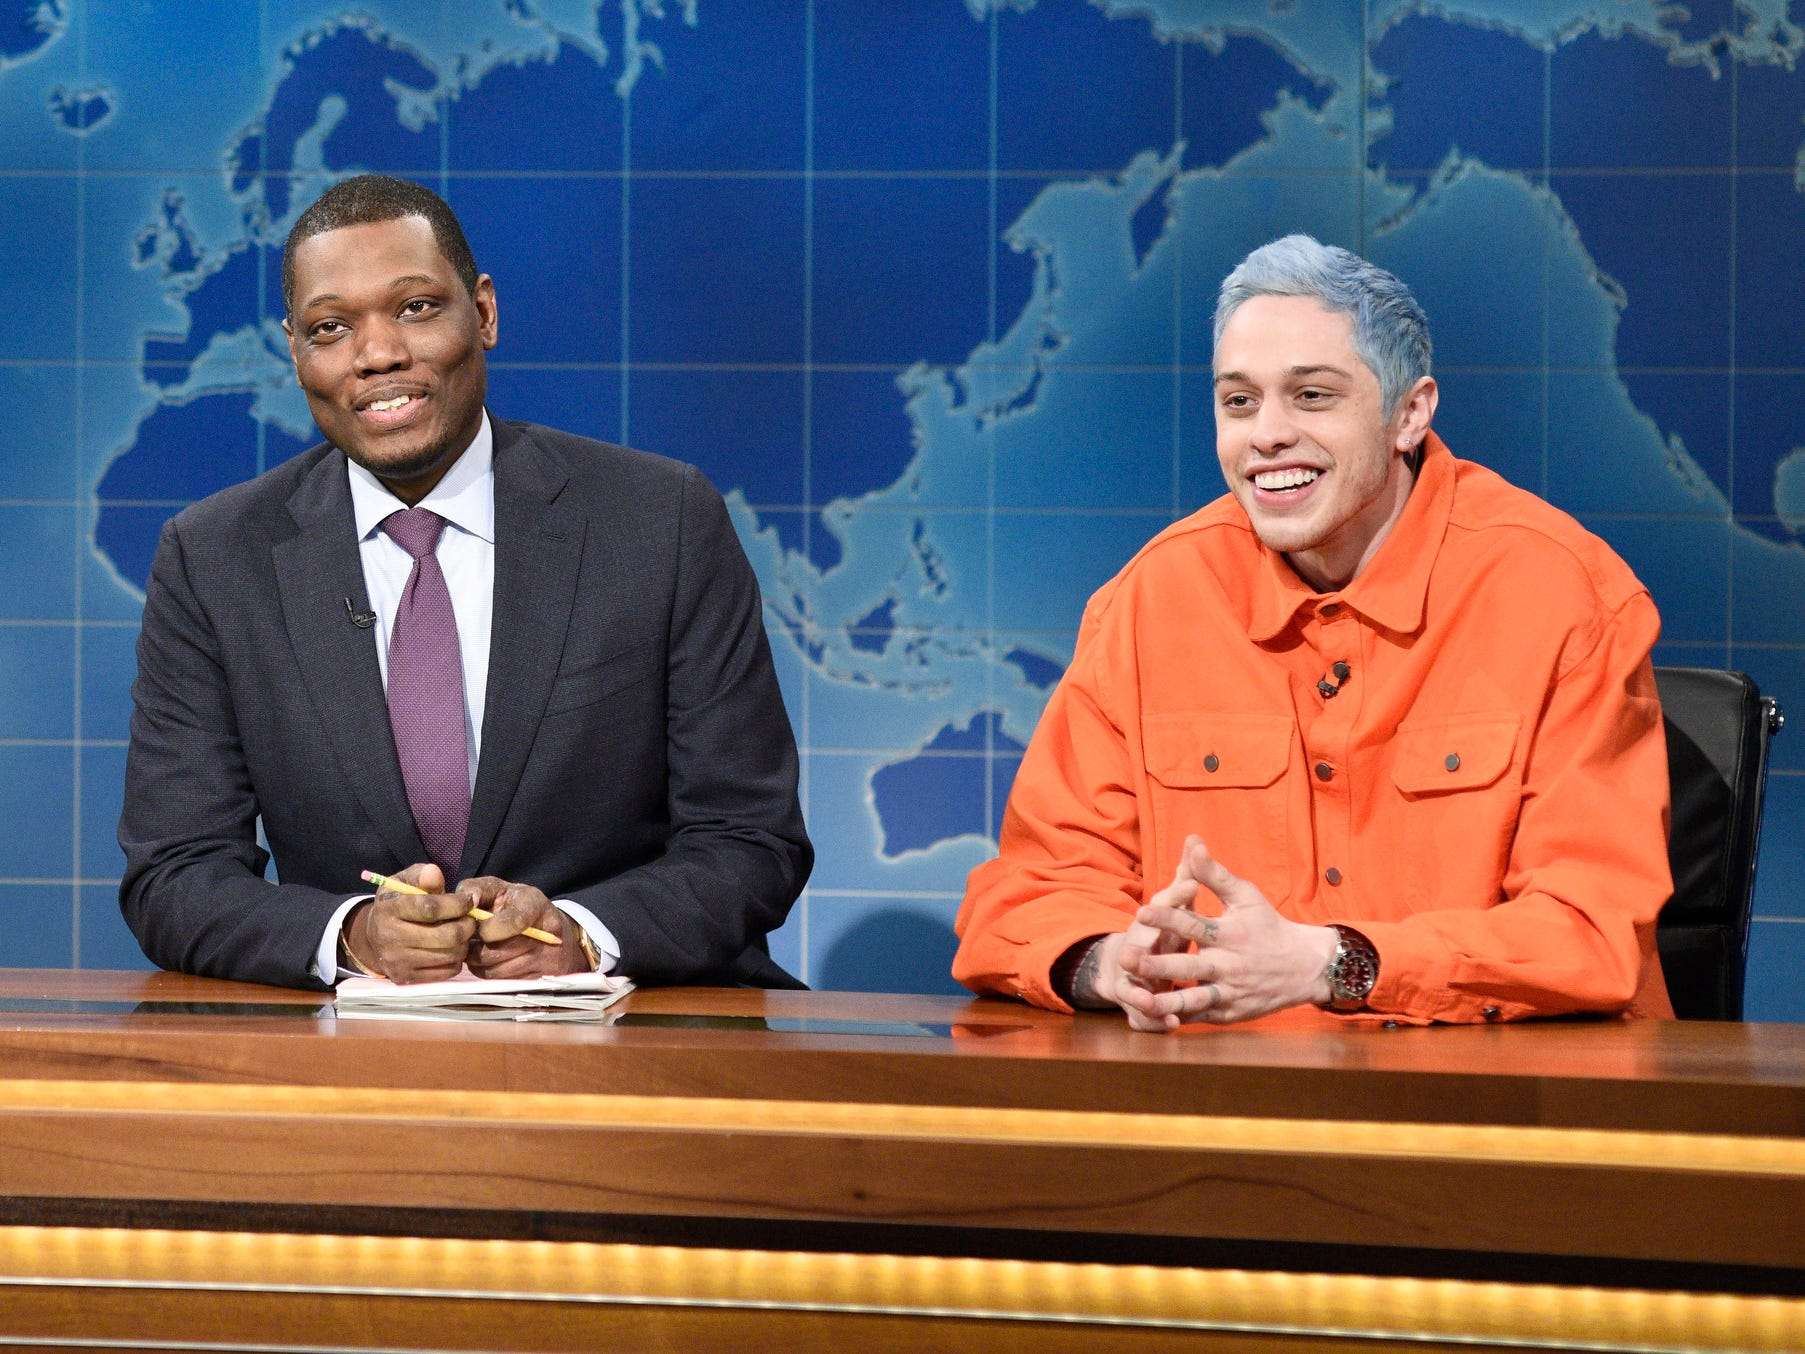 """Saturday Night Live"" returned with a new episode Nov. 3, just in time for Pete Davidson (seen here with ""Weekend Update"" co-host Michael Che) to take aim at what he dubbed ""gross"" candidates before Election Day. That included Republican Dan Crenshaw of Texas. ""You may be surprised to hear he's a congressional candidate in Texas and not a hitman in a porno movie,"" Davidson said of Crenshaw, who wears an eye patch due to an injury he suffered fighting in Afghanistan. The Republican later tweeted, ""Good rule in life: I try hard not to offend; I try harder not to be offended. That being said, I hope @nbcsnl recognizes that vets don't deserve to see their wounds used as punchlines for bad jokes."""